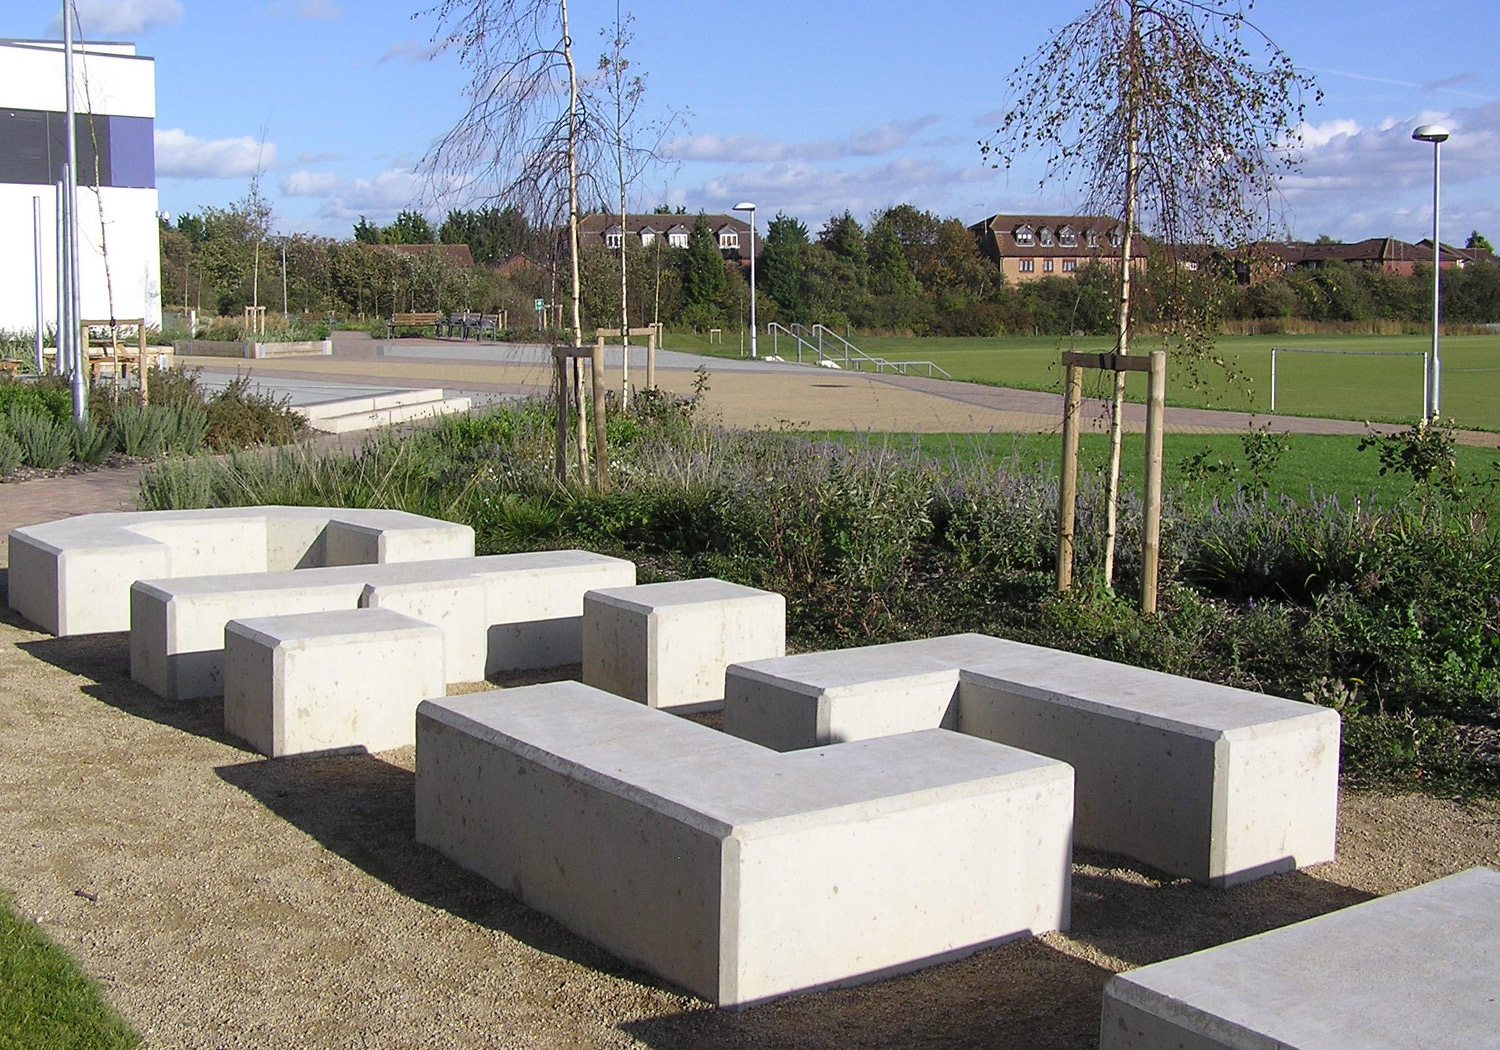 Projects-Education-Luton-SeatingCubes-1500x1050